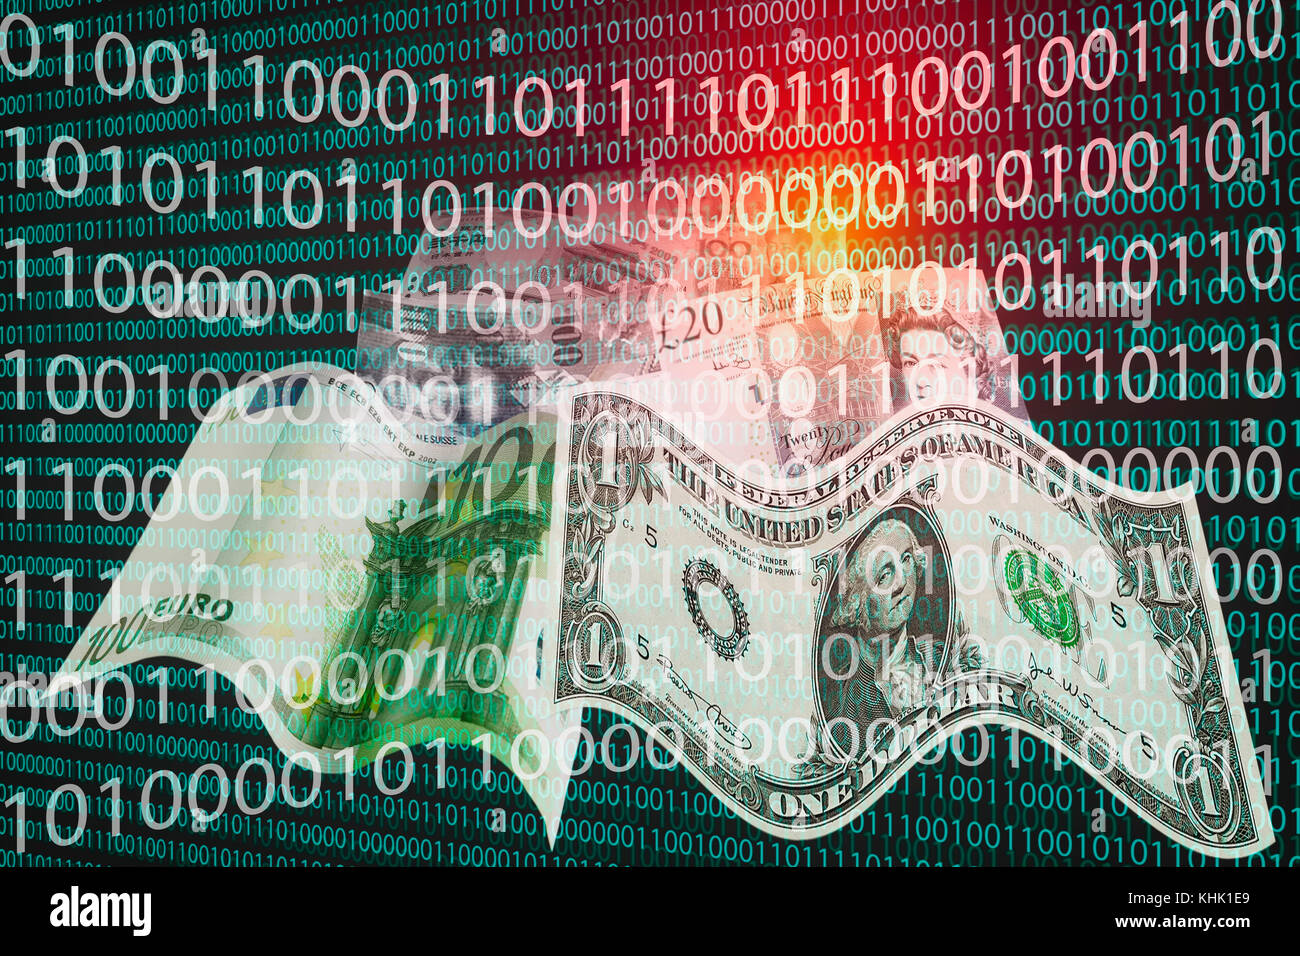 Binary code and banknotes of different currencies symbolizing cryptocurrencies as a new means of payment - Stock Image